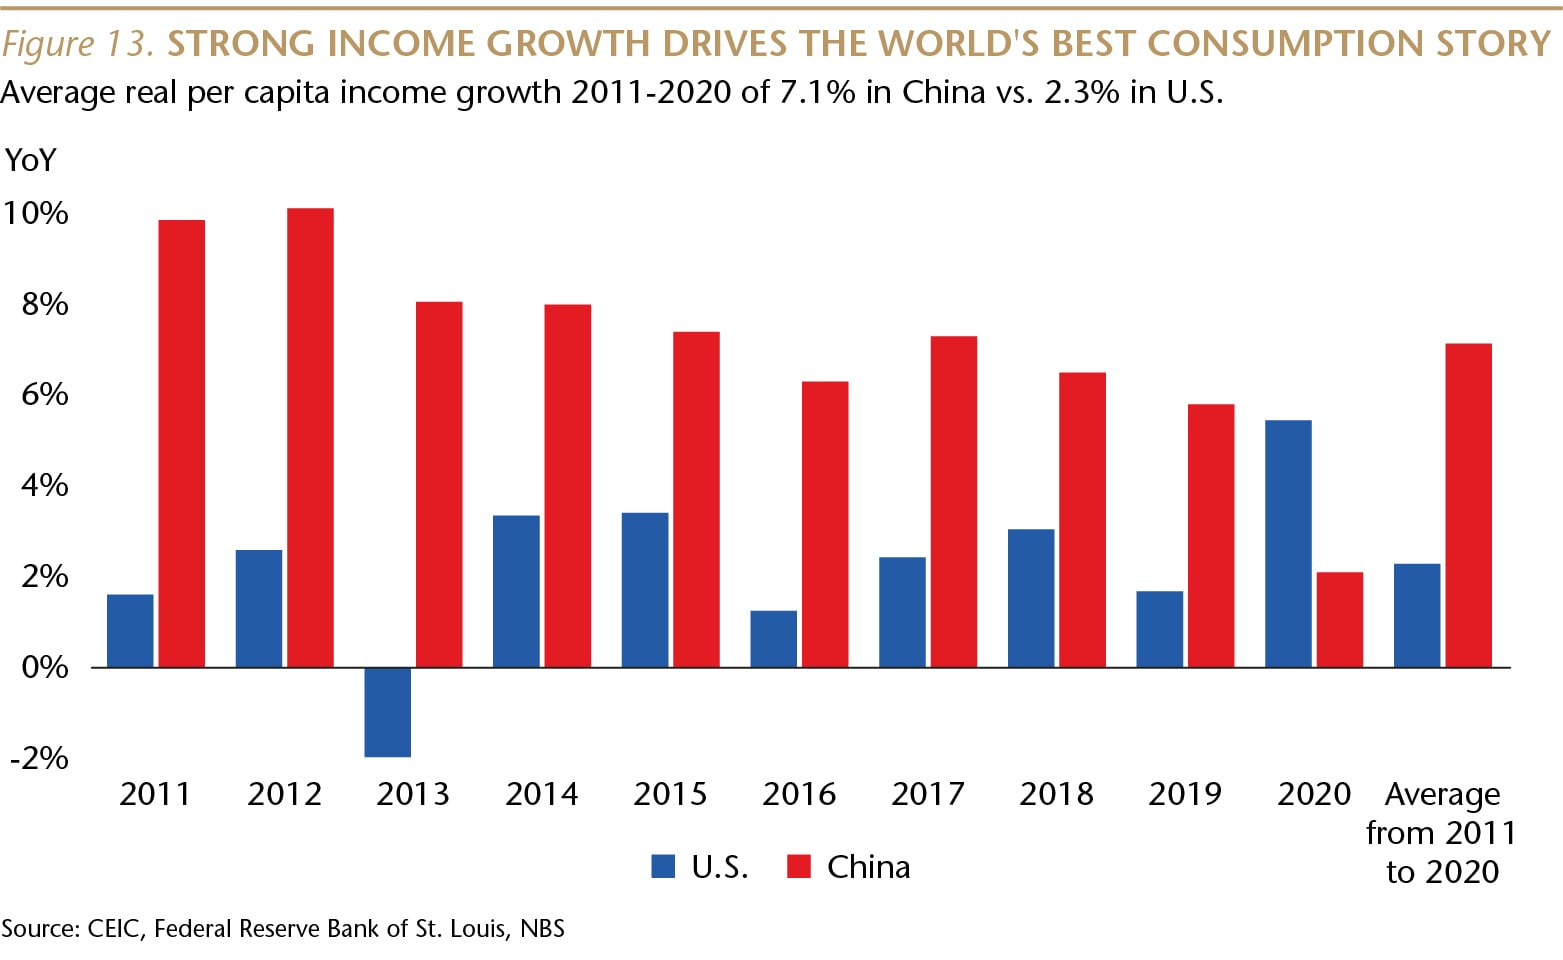 SI073_Figure 13_Strong income growth drives consumption_WEB-01-min.jpg